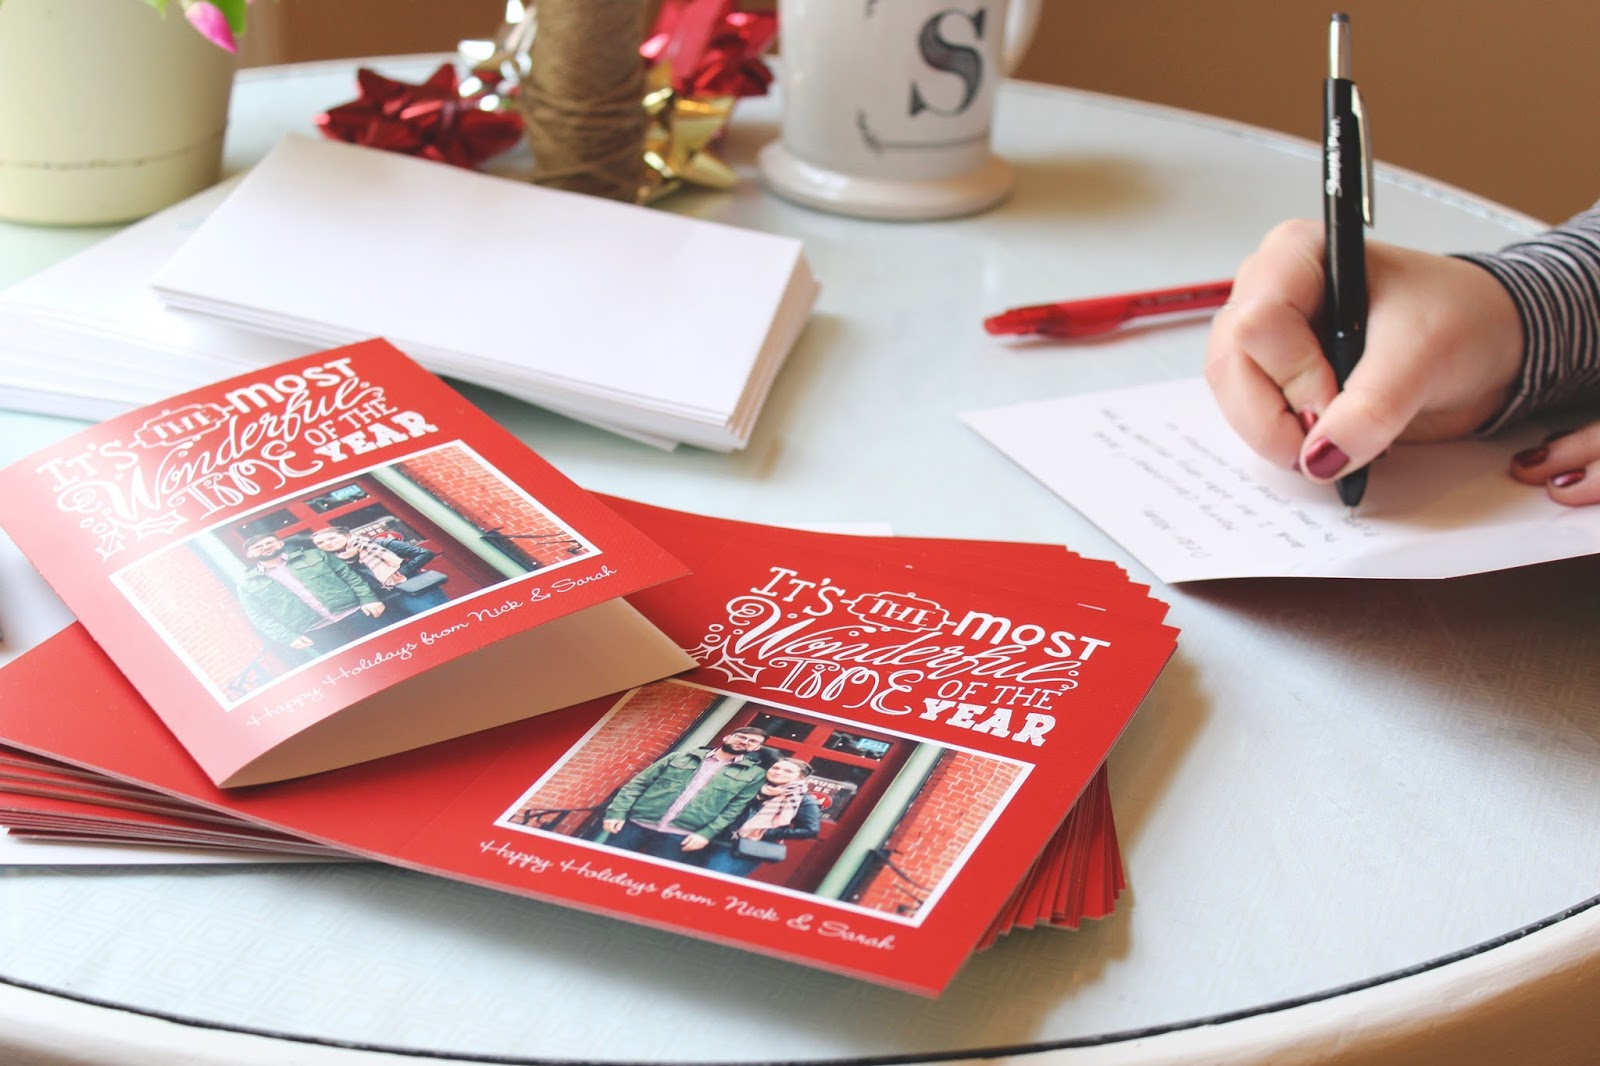 Staples Holiday Cards & Gifts - The Surznick Common Room